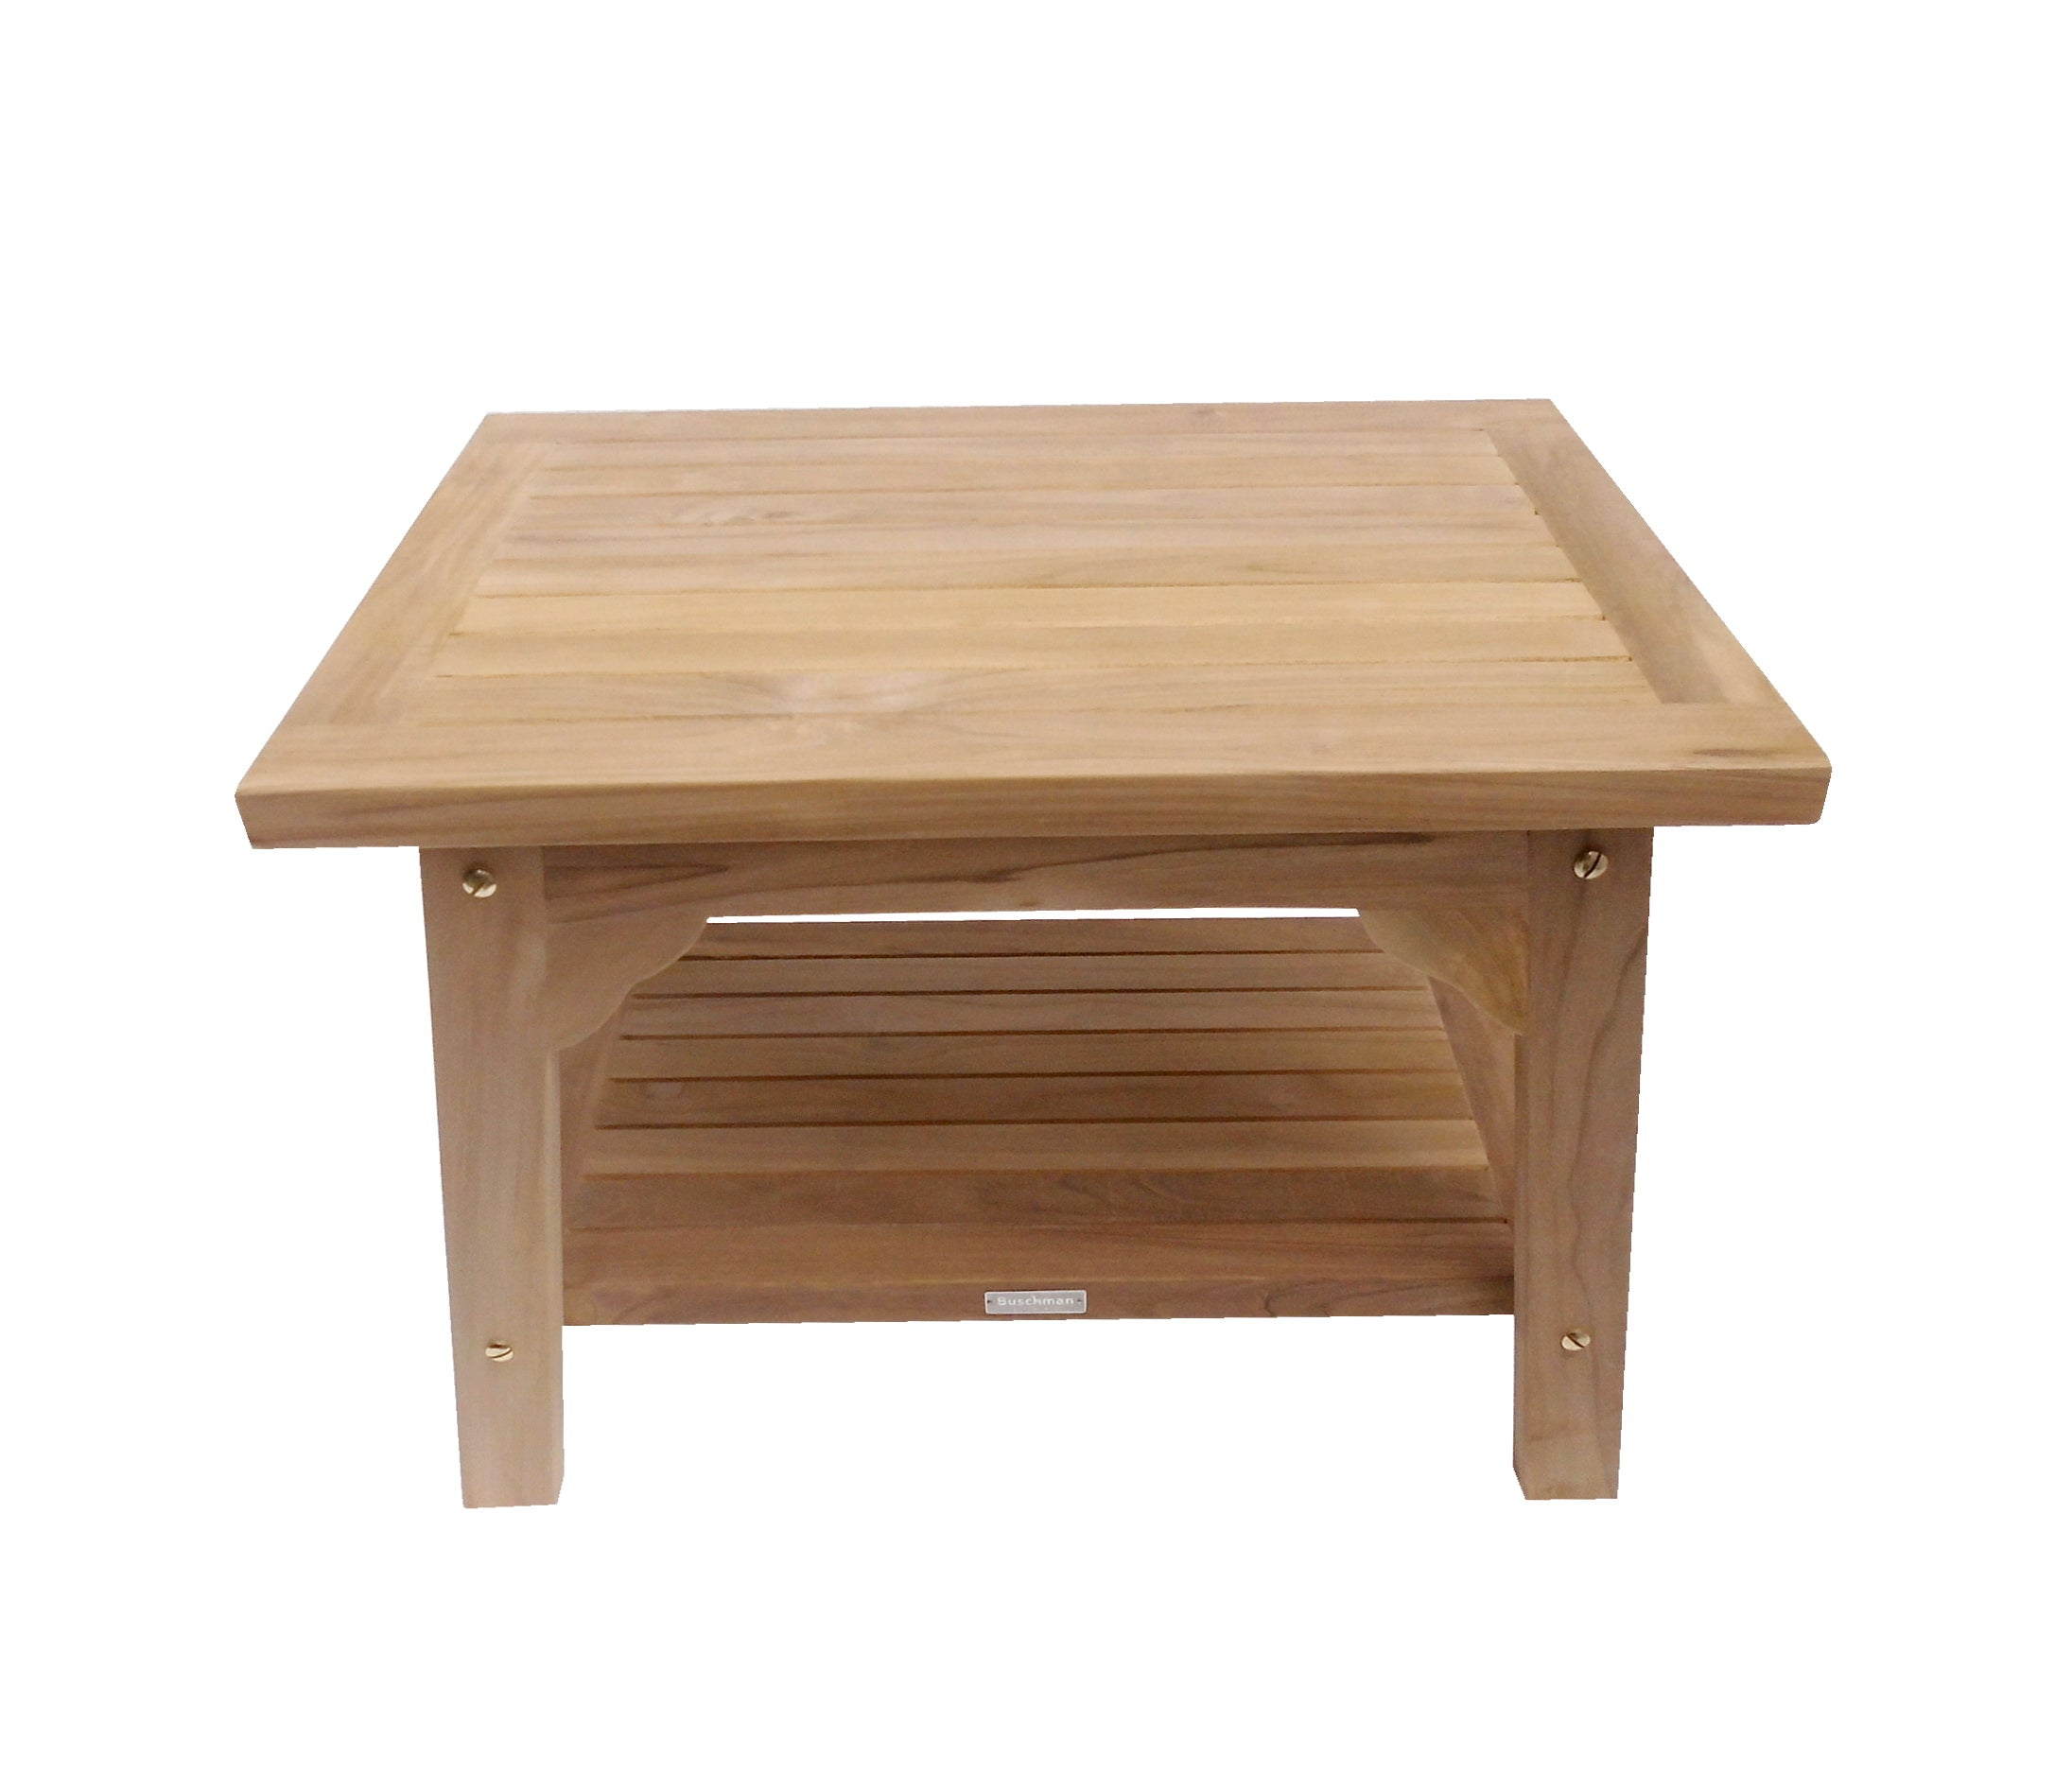 Buschman 24 Inches Teak Shower Bench with Shelf